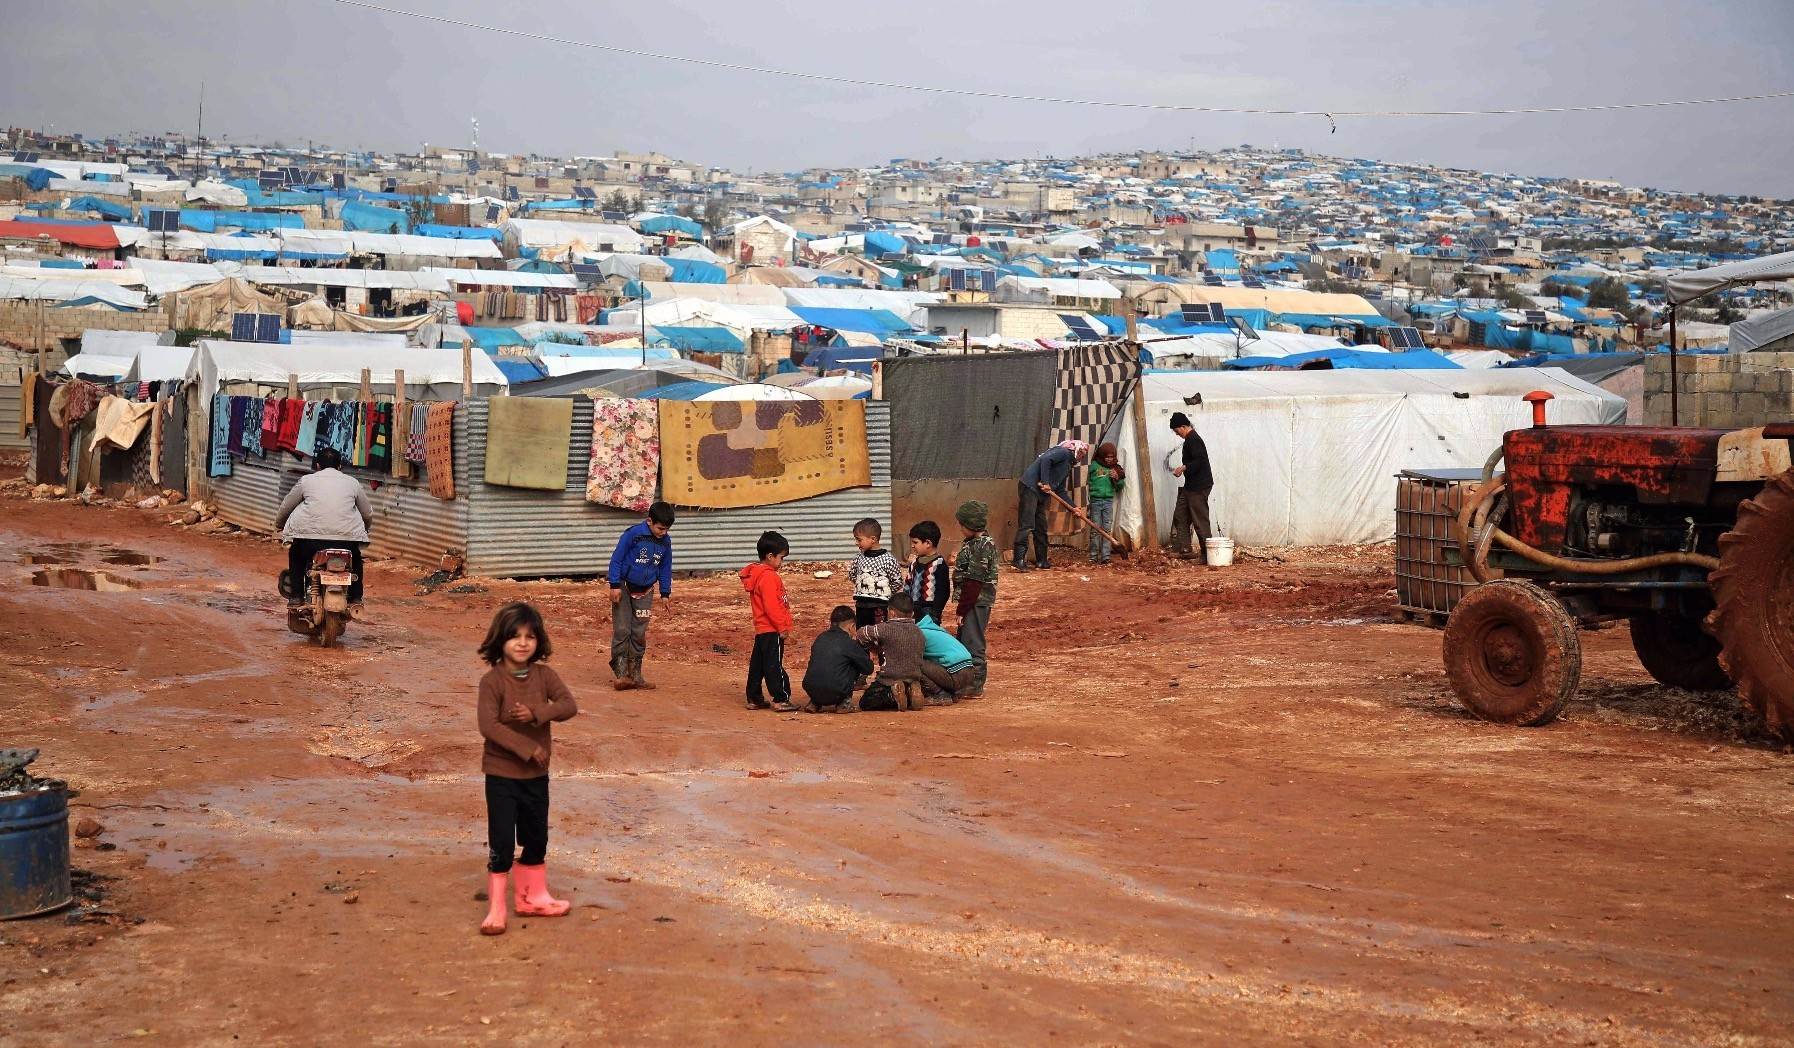 Children gather outside their makeshift shelters following torrential rain that affected a camp for displaced people near the town of Atme, close to the Turkish border, in Syriau2019s mostly opposition-held northern Idlib province, Jan. 10.